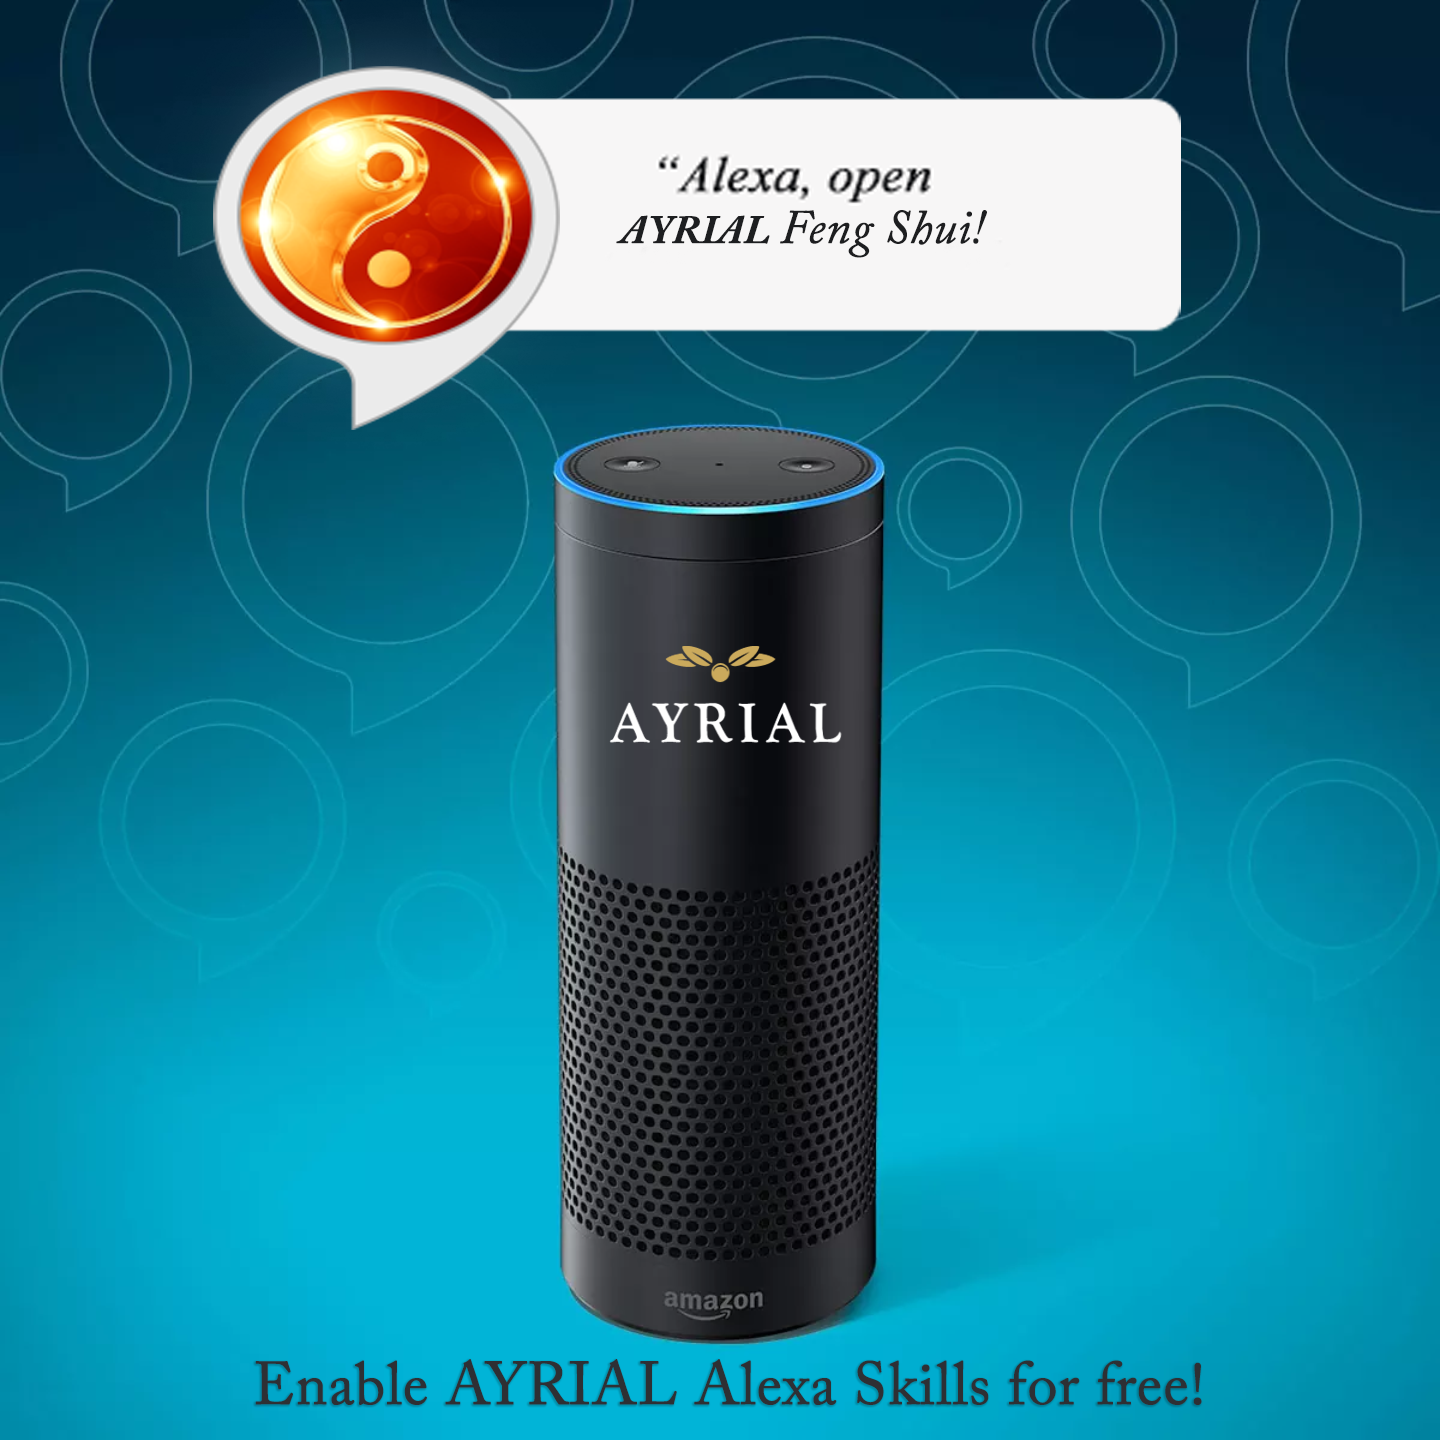 AYRIAL Feng Shui Alexa Skill brings on Founder of Simple Shui